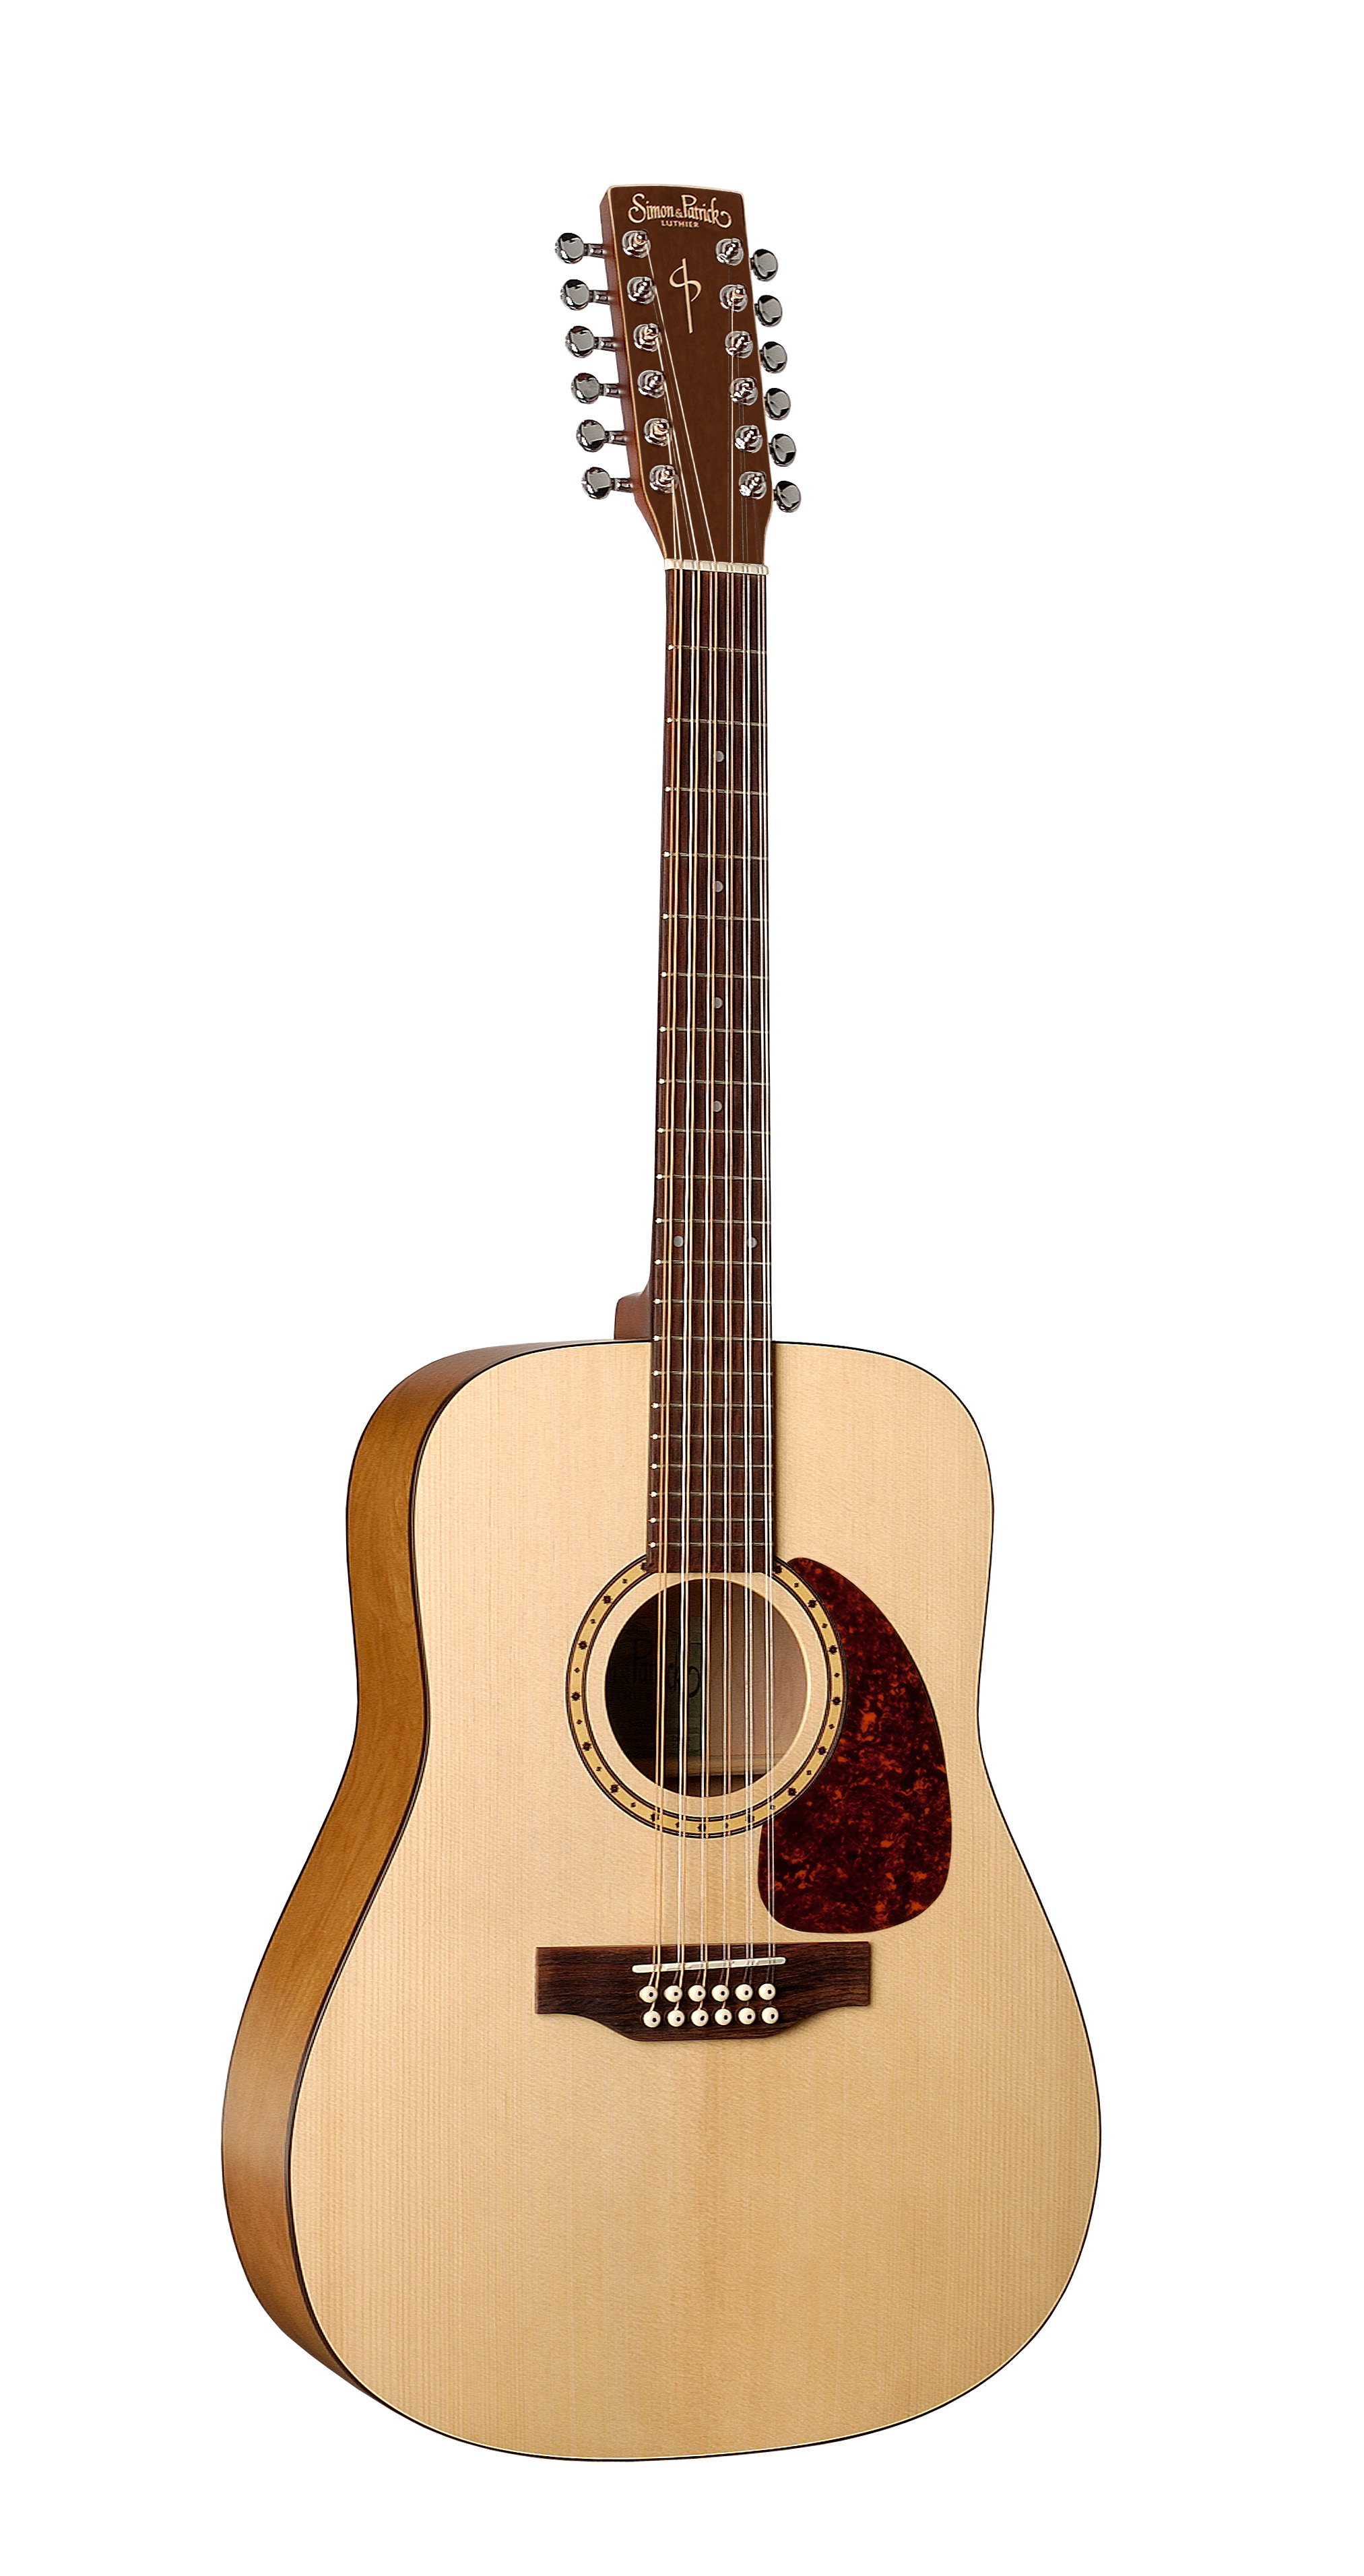 Simon & Patrick 28931 Woodland Spruce 12 String Acoustic Guitar